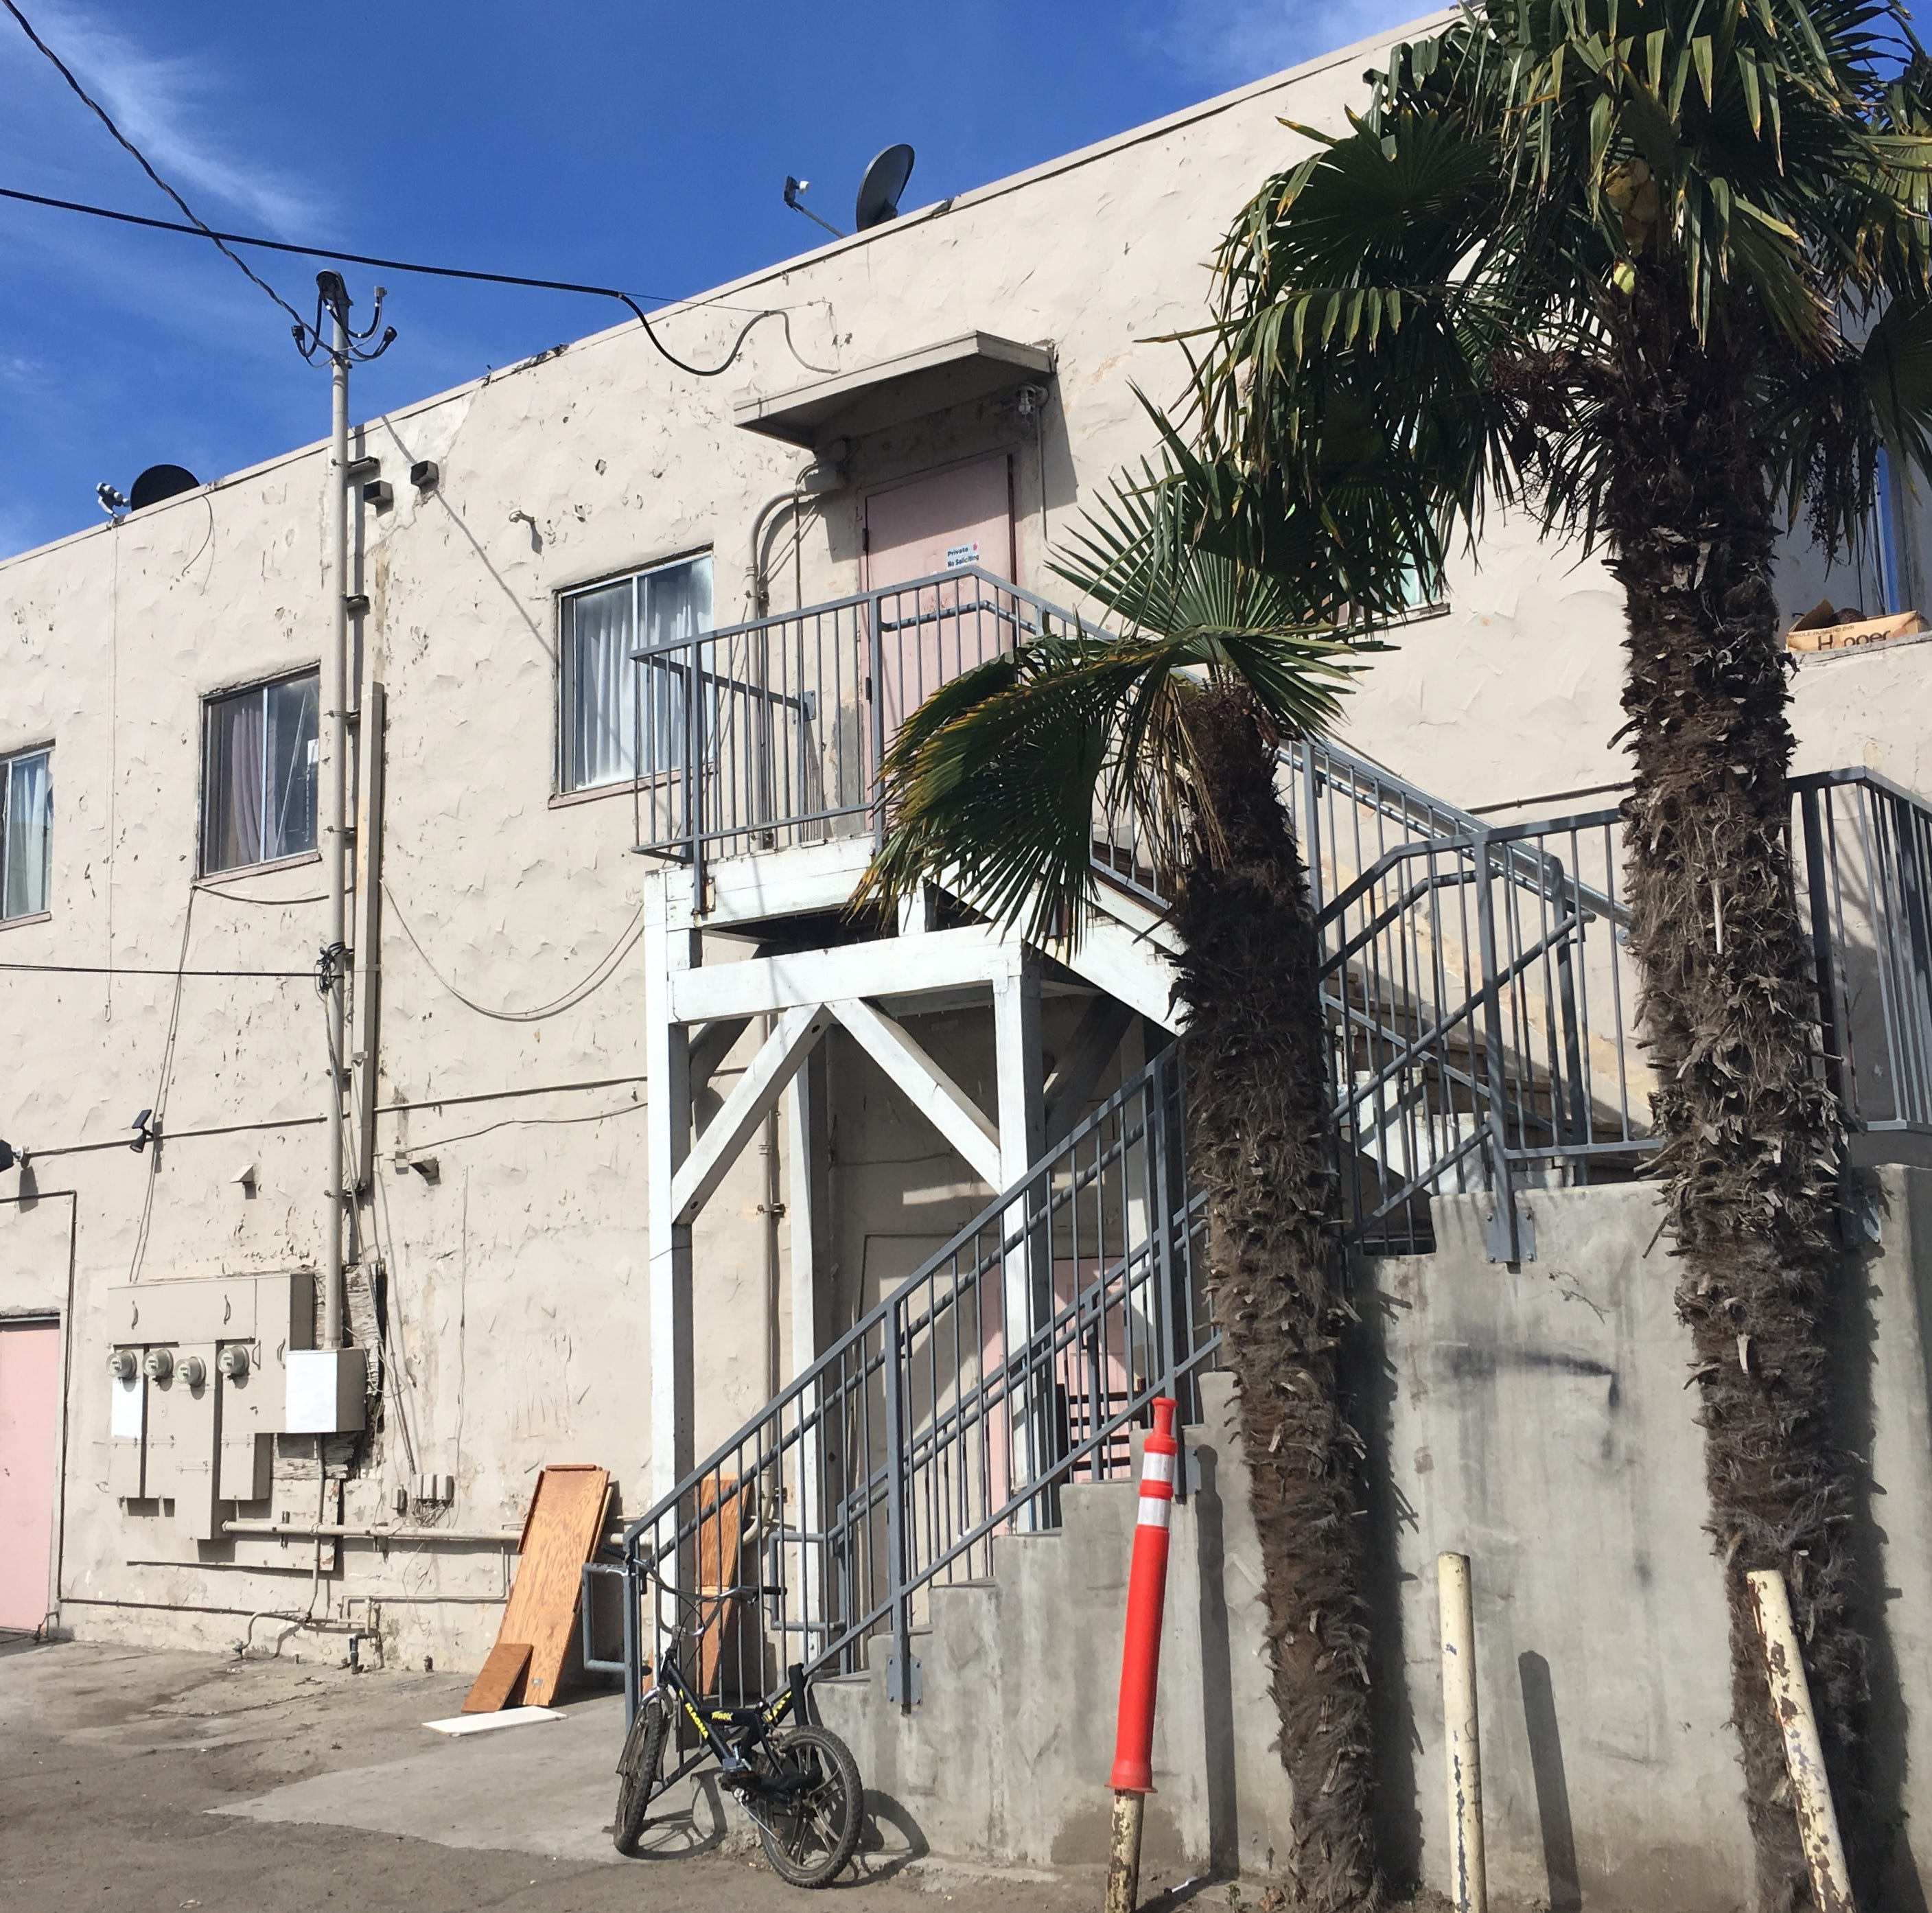 Ventura housing authority buys dilapidated building, plans to develop safe, affordable units